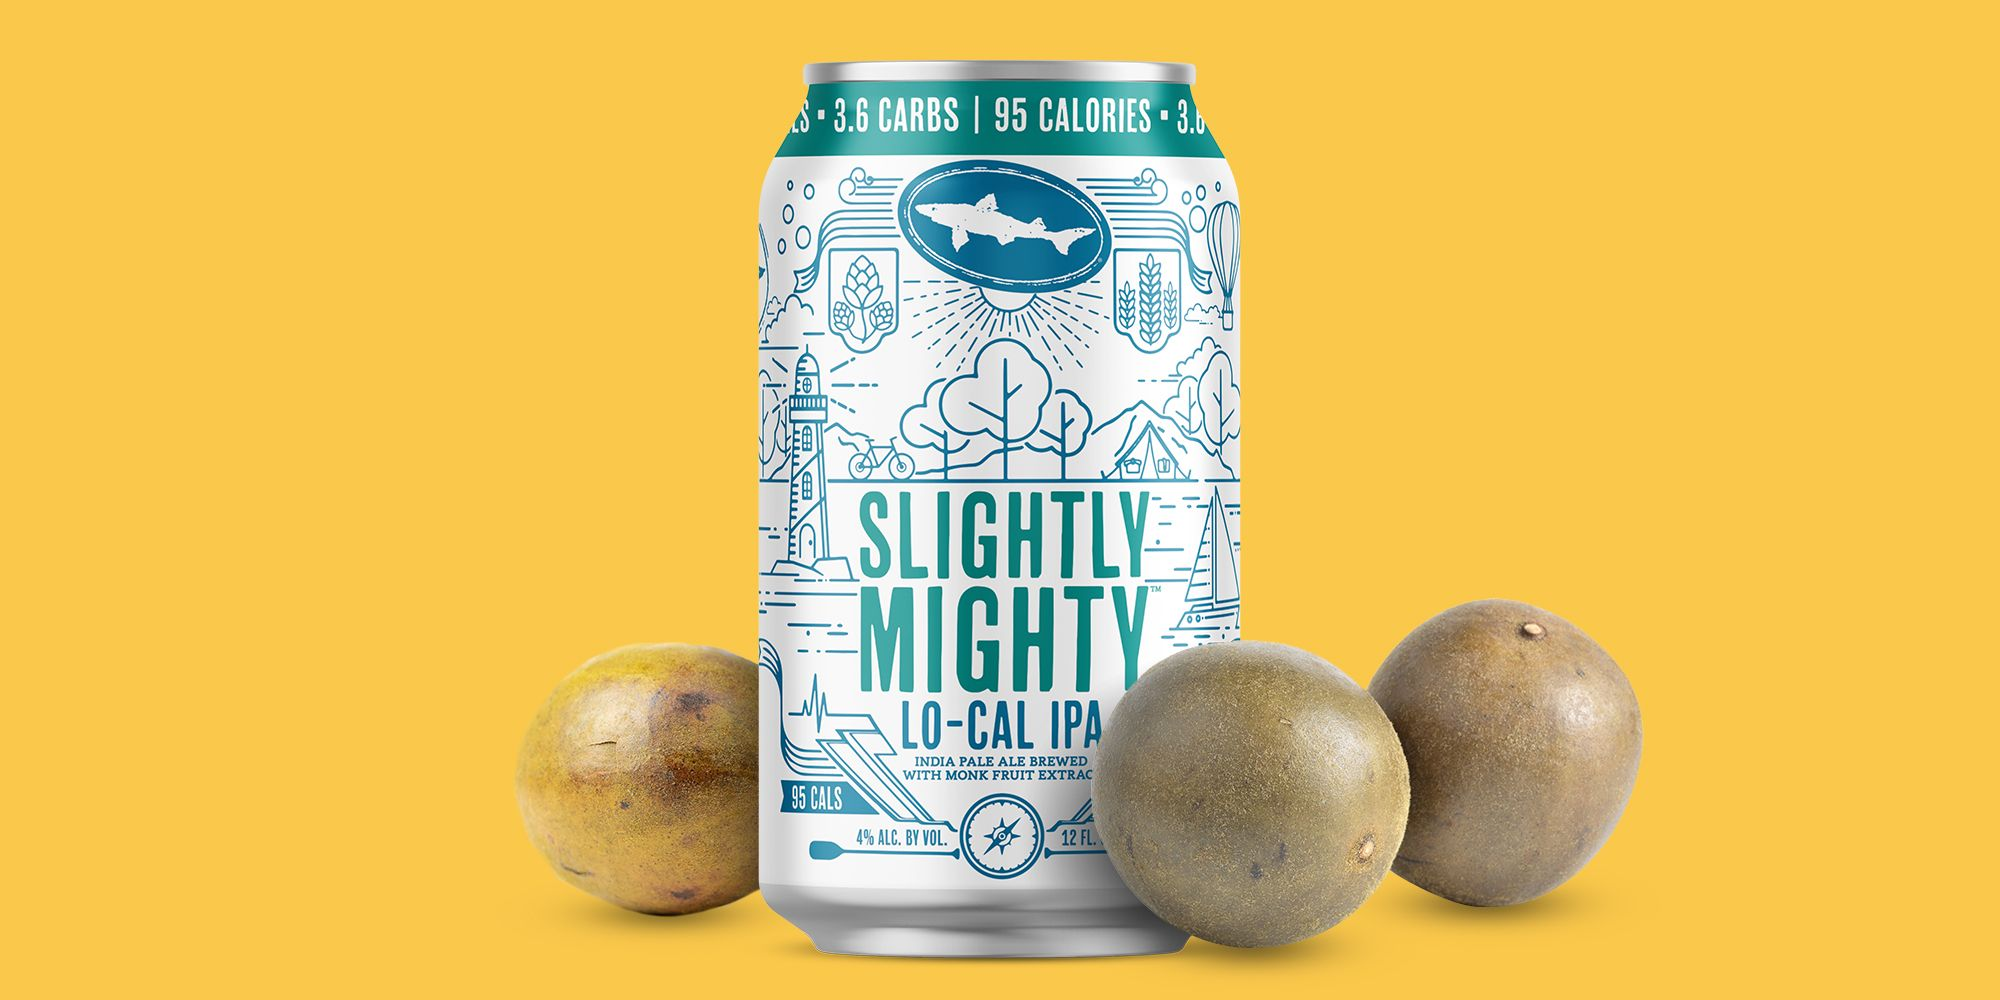 Dogfish Head's New Beer, Slightly Mighty, Is a Low-Calorie IPA ...